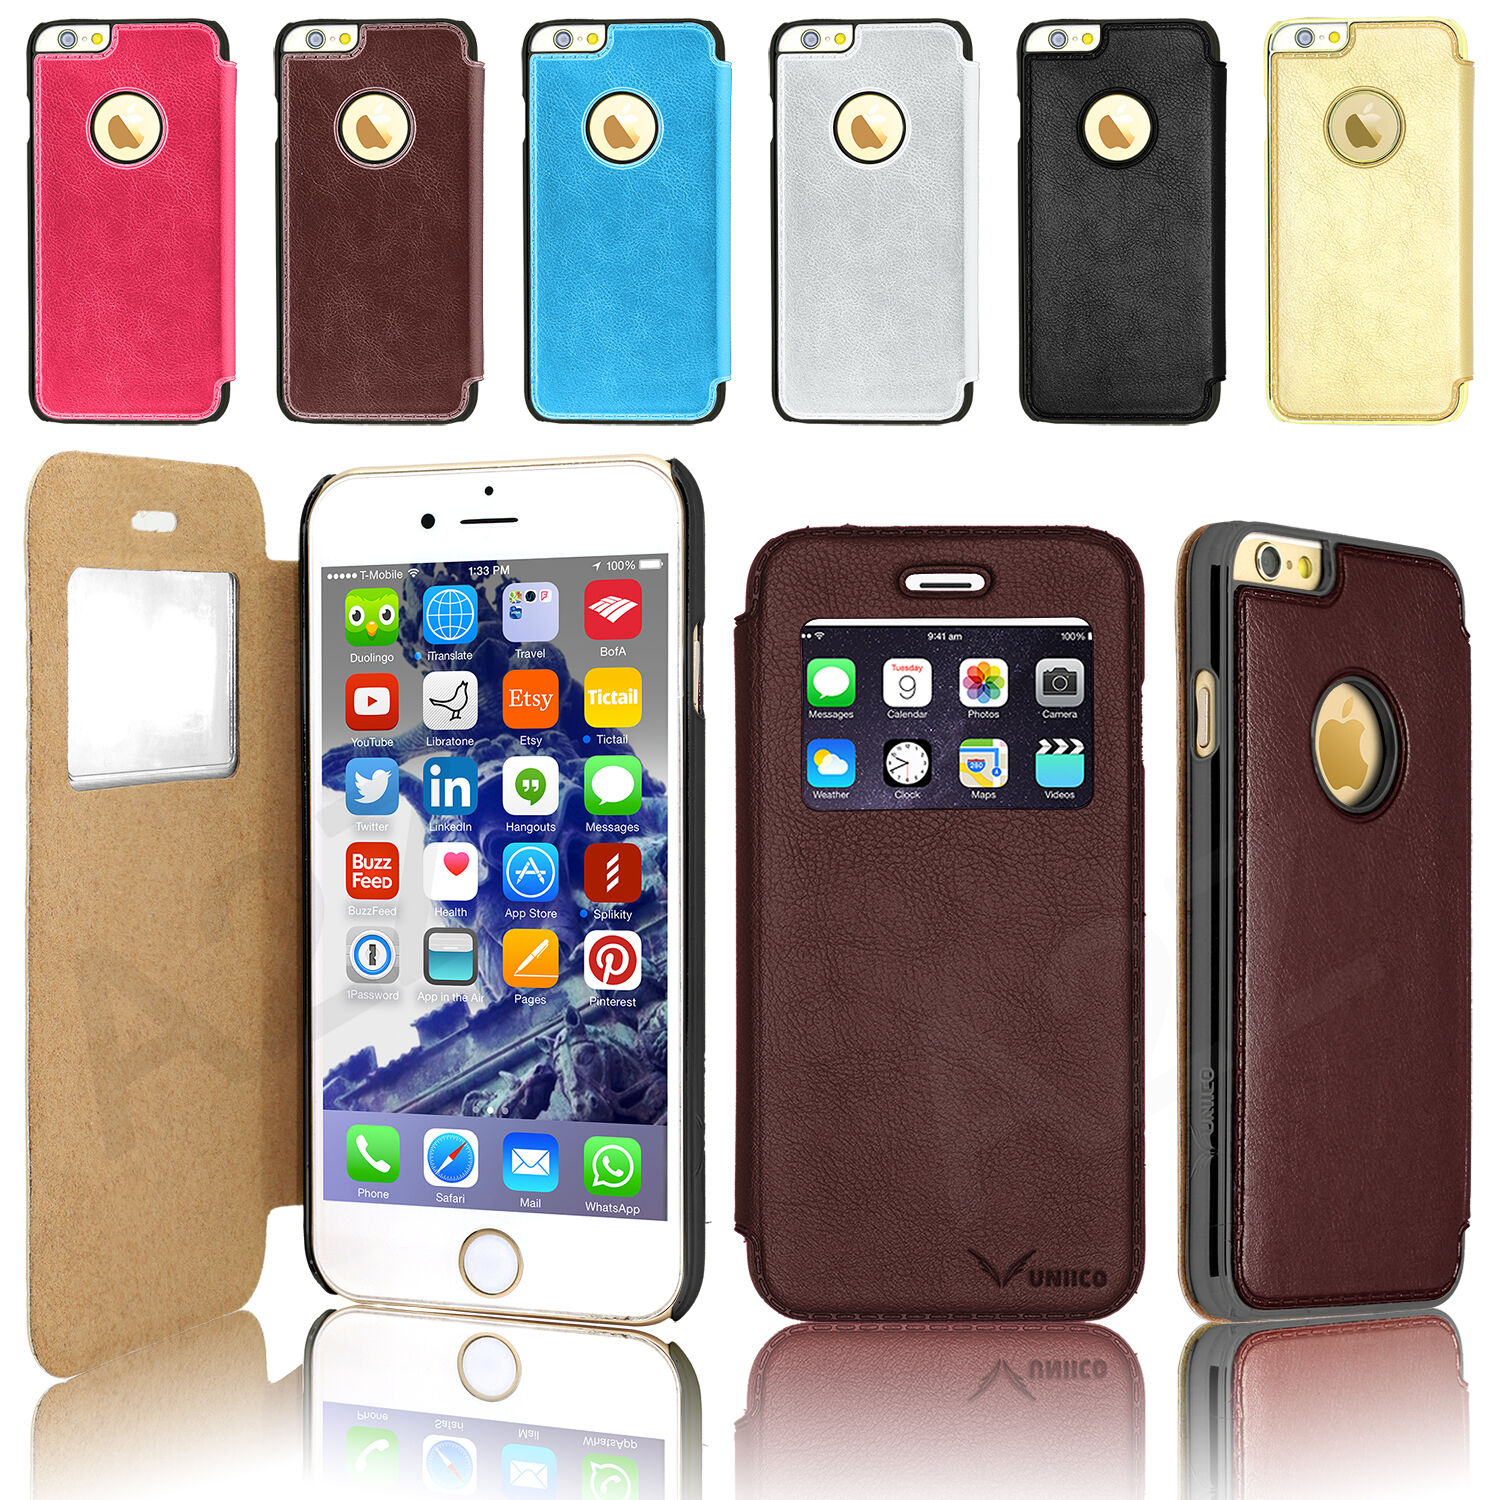 custodia in pelle iphone 4s ebay